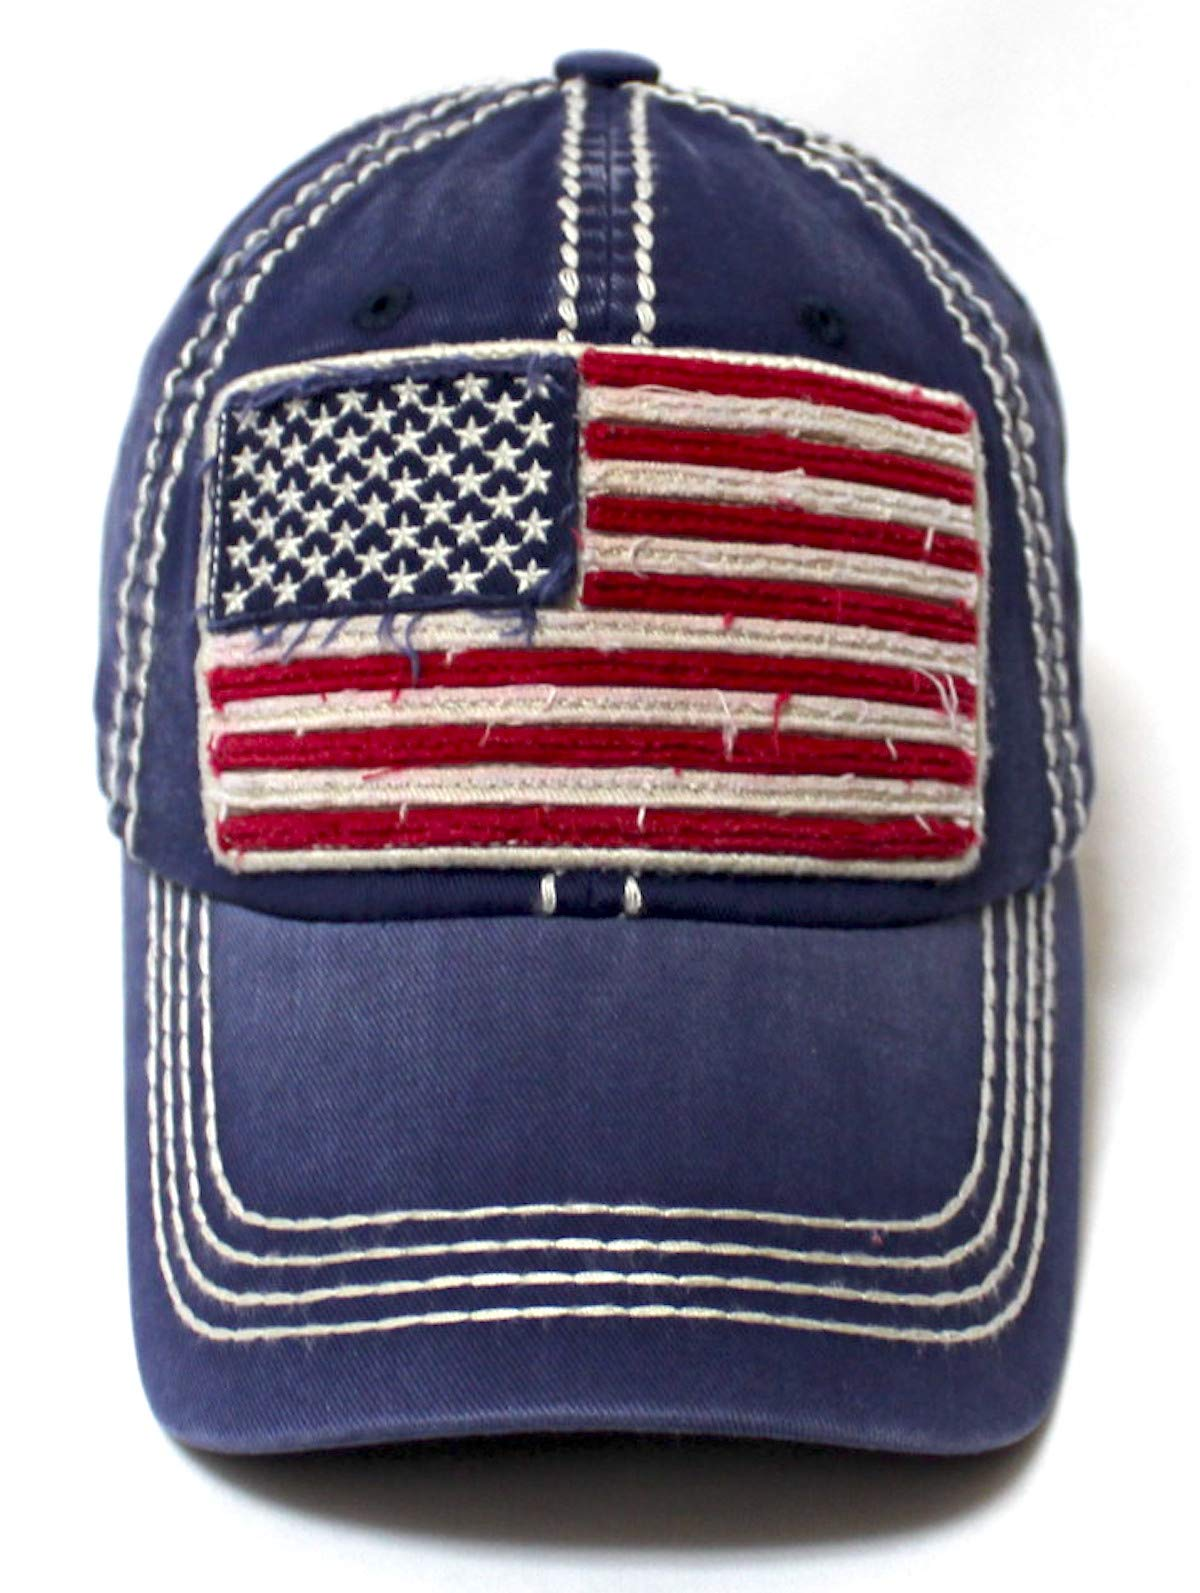 Vintage Navy Blue Oversized American Flag Patch Embroidery Baseball Cap